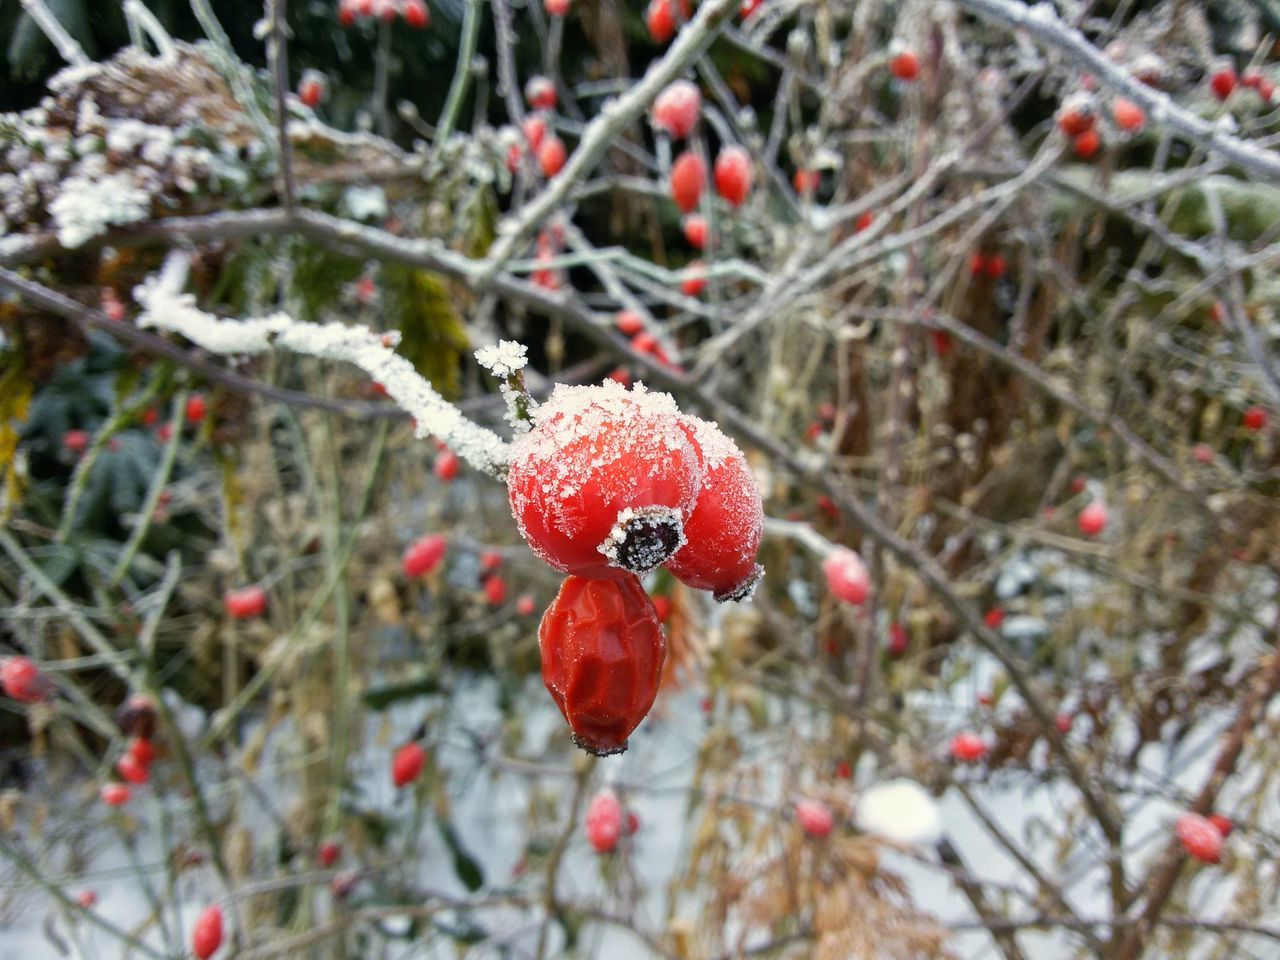 Rose Hips in Winter Rose Hips Fruits Wild Berries Nature Hoarfrost Hoar Frost Winter Iced Cold Red Snow Plants Closeup